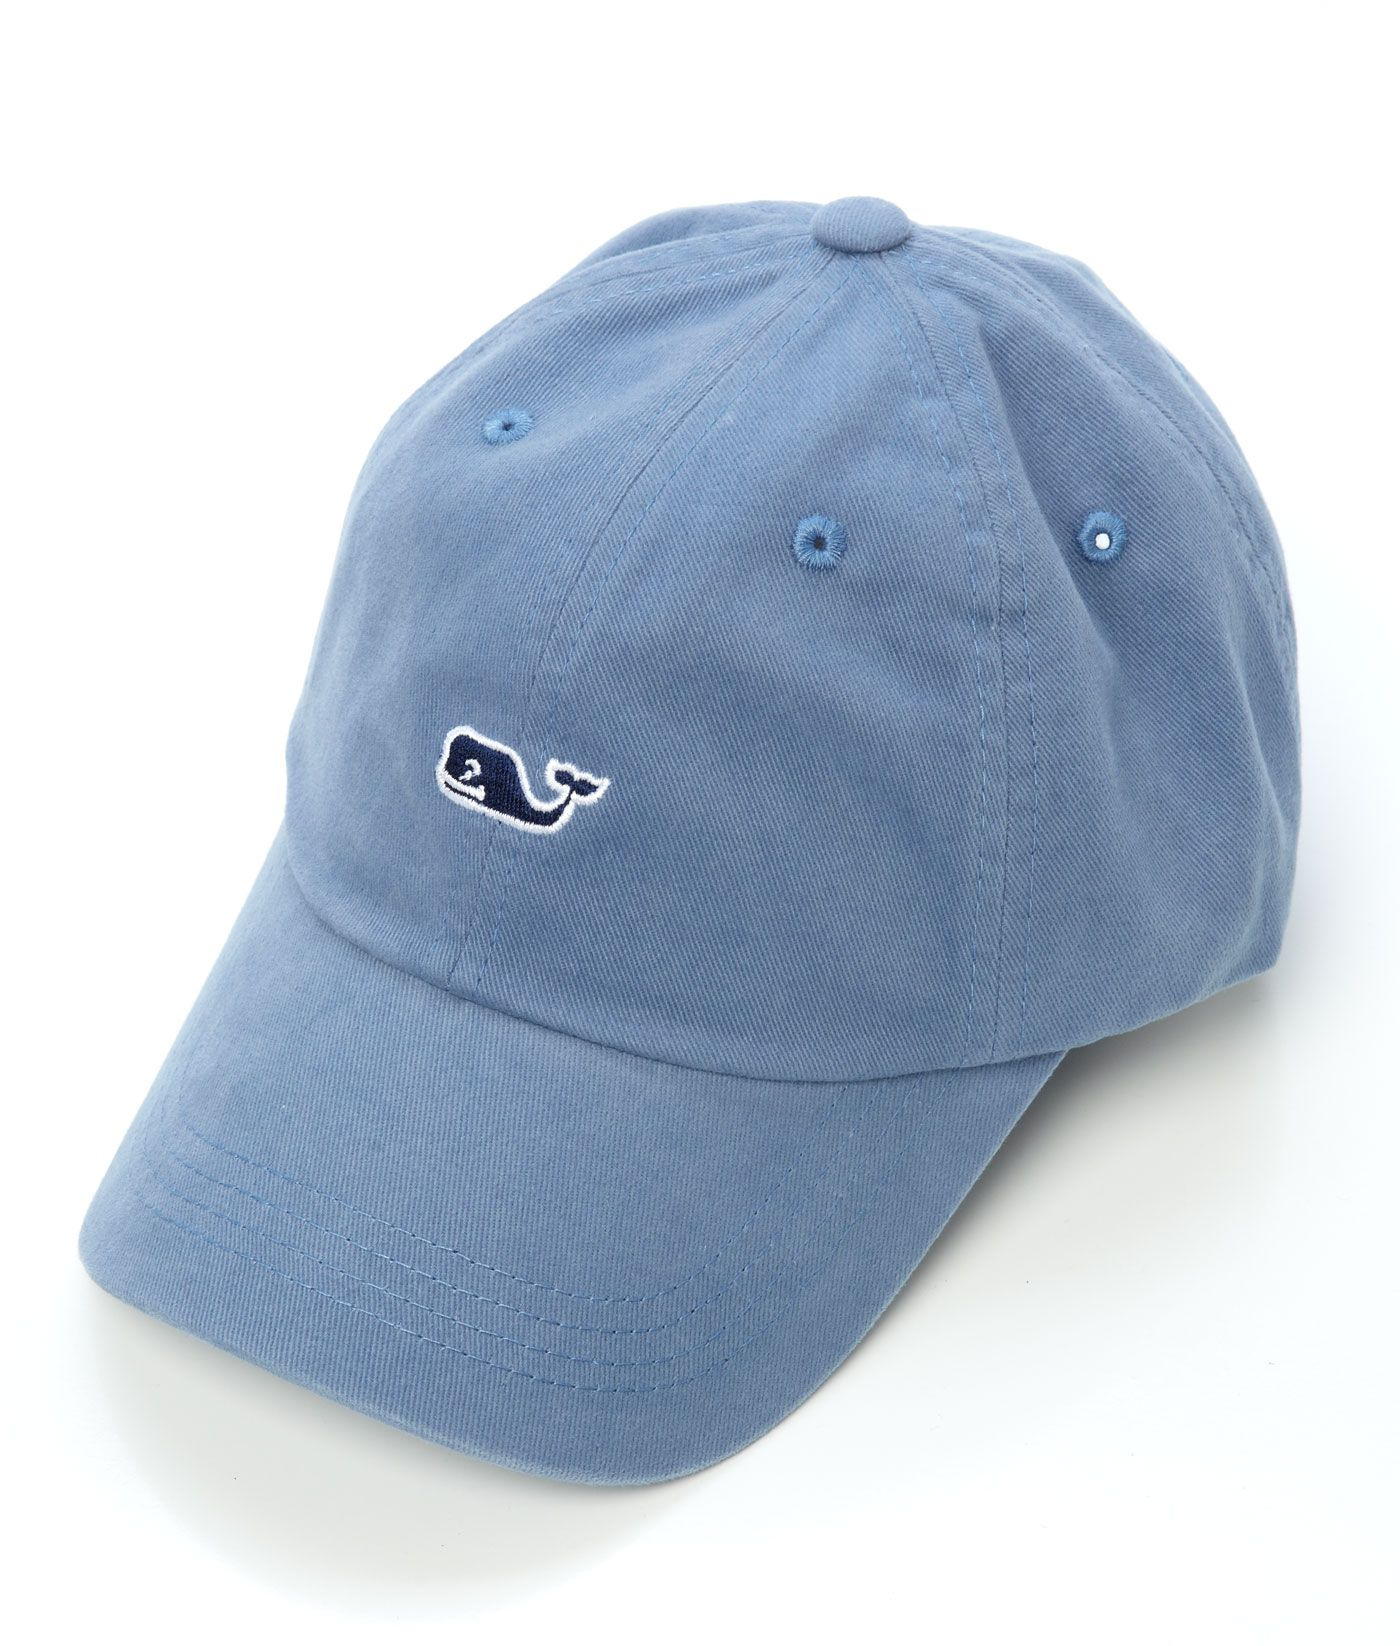 22bb04d6703b Men's Baseball Caps: Signature Whale Logo Baseball Hat - Vineyard Vines